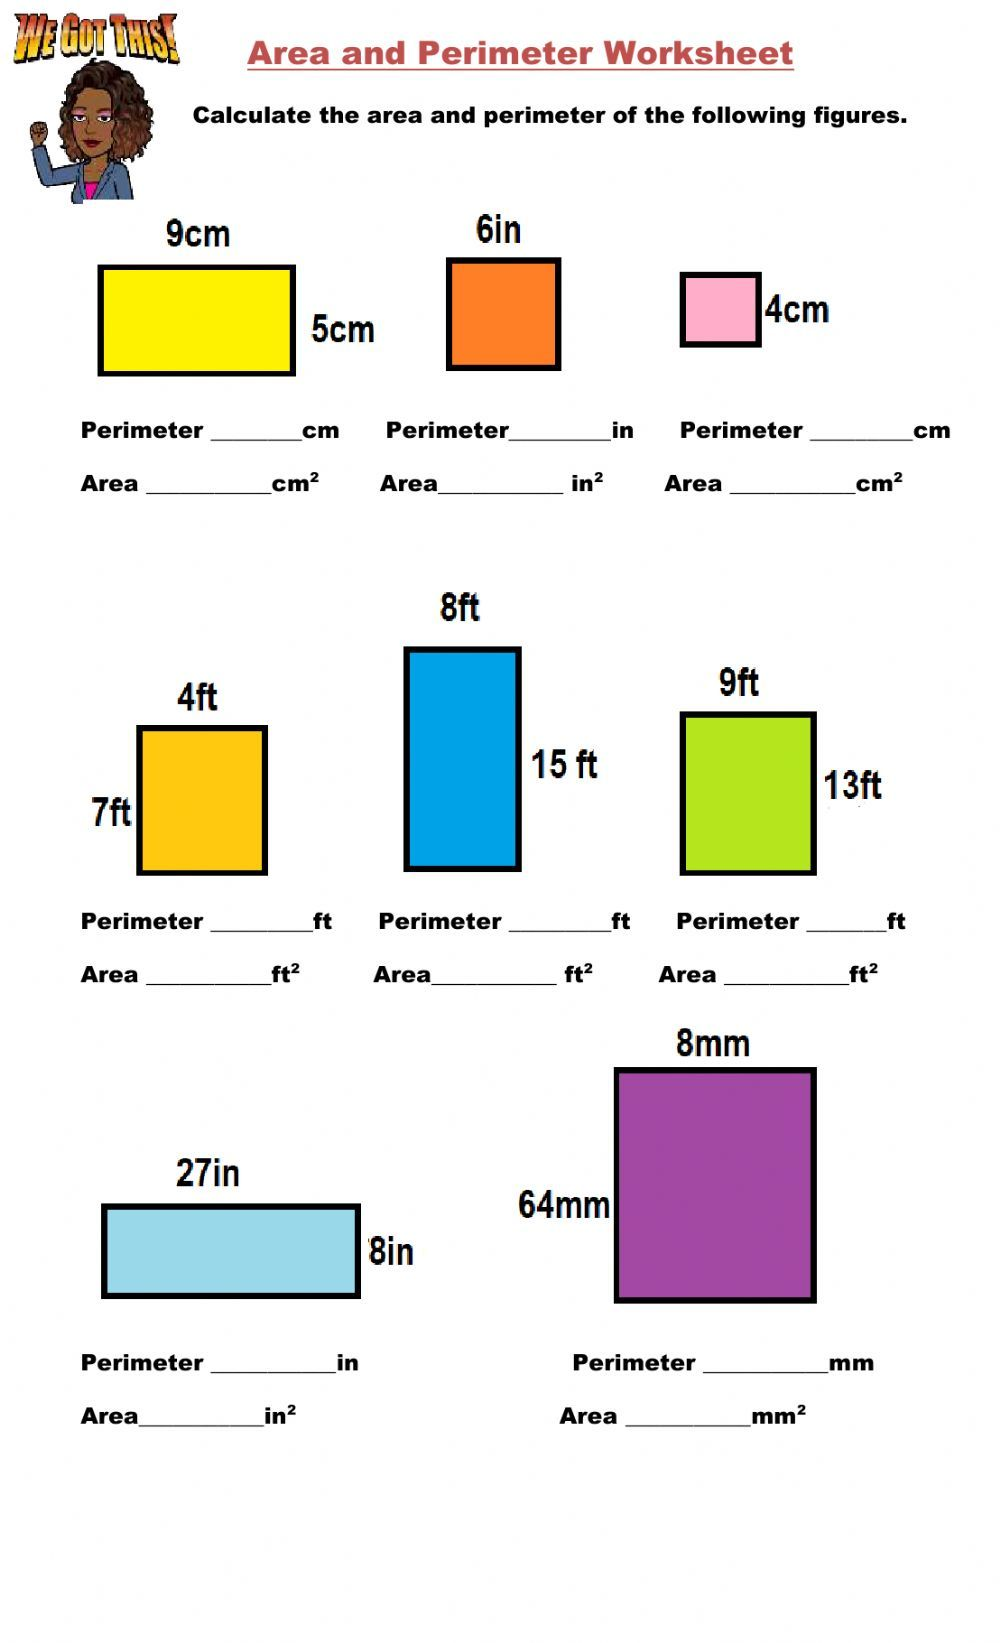 Area And Perimeter Interactive Activity For 4 6 You Can Do The Exercises Online Or Downl In 2021 Area And Perimeter Worksheets Area And Perimeter Perimeter Worksheets [ 1643 x 1000 Pixel ]